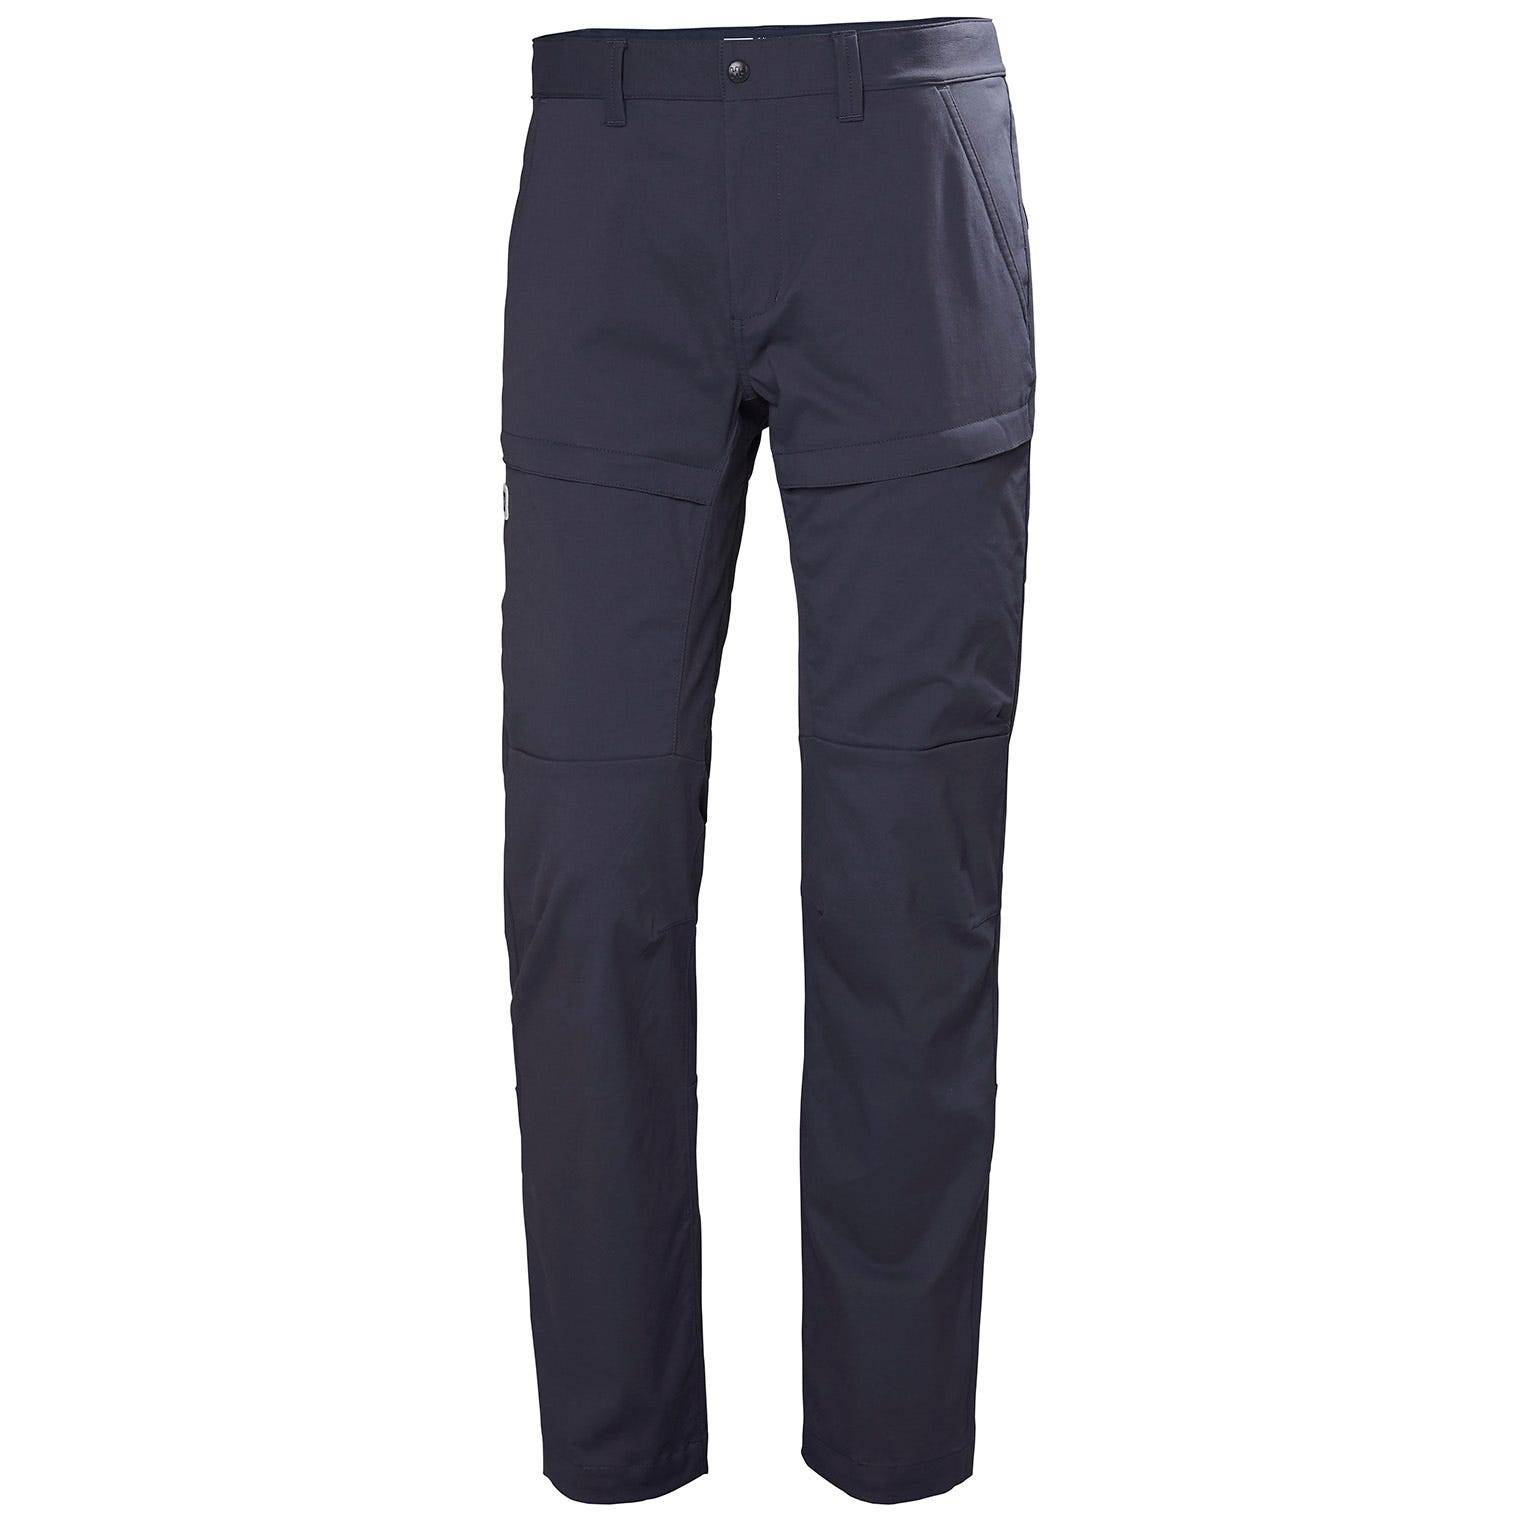 Helly Hansen Skar Pant Mens Hiking Navy M